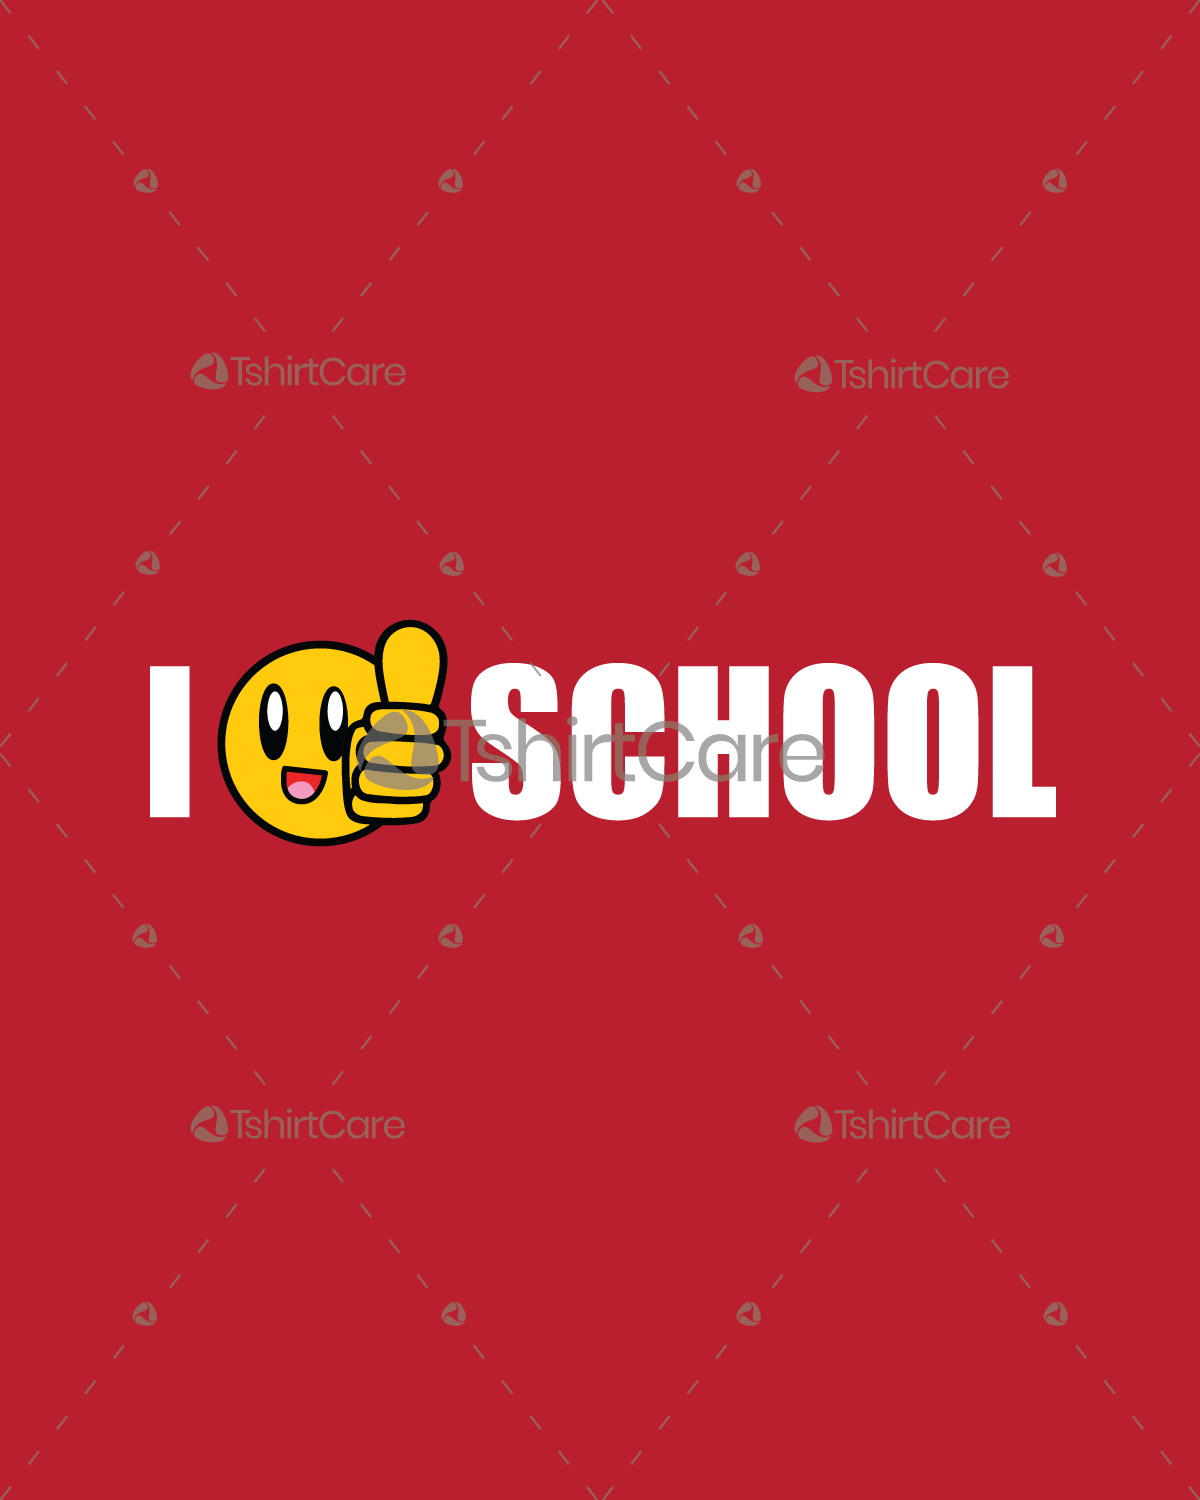 I like school T shirt Design Custom Cool School Shirts for Your Group &  Team - TshirtCare